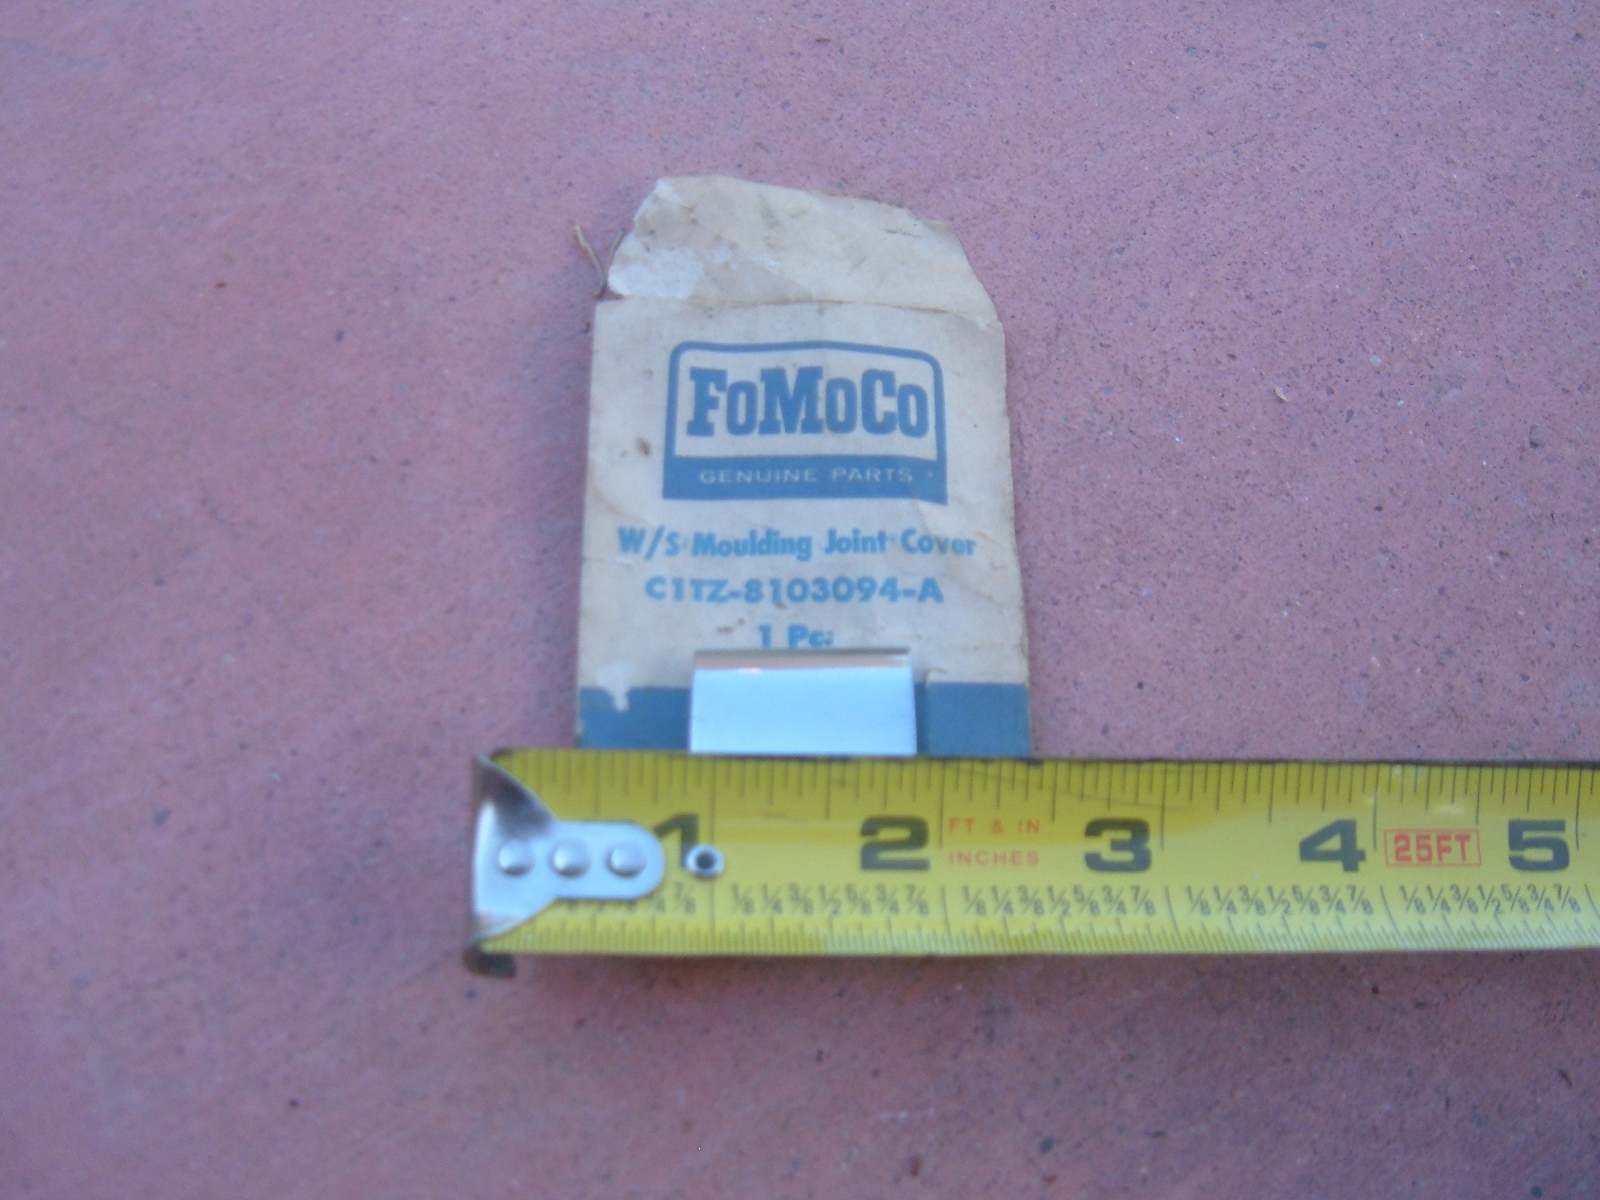 1961 62 63 ford truck rear window molding clip nos ford C1TZ-8103094-A (z c1tz8102094a)